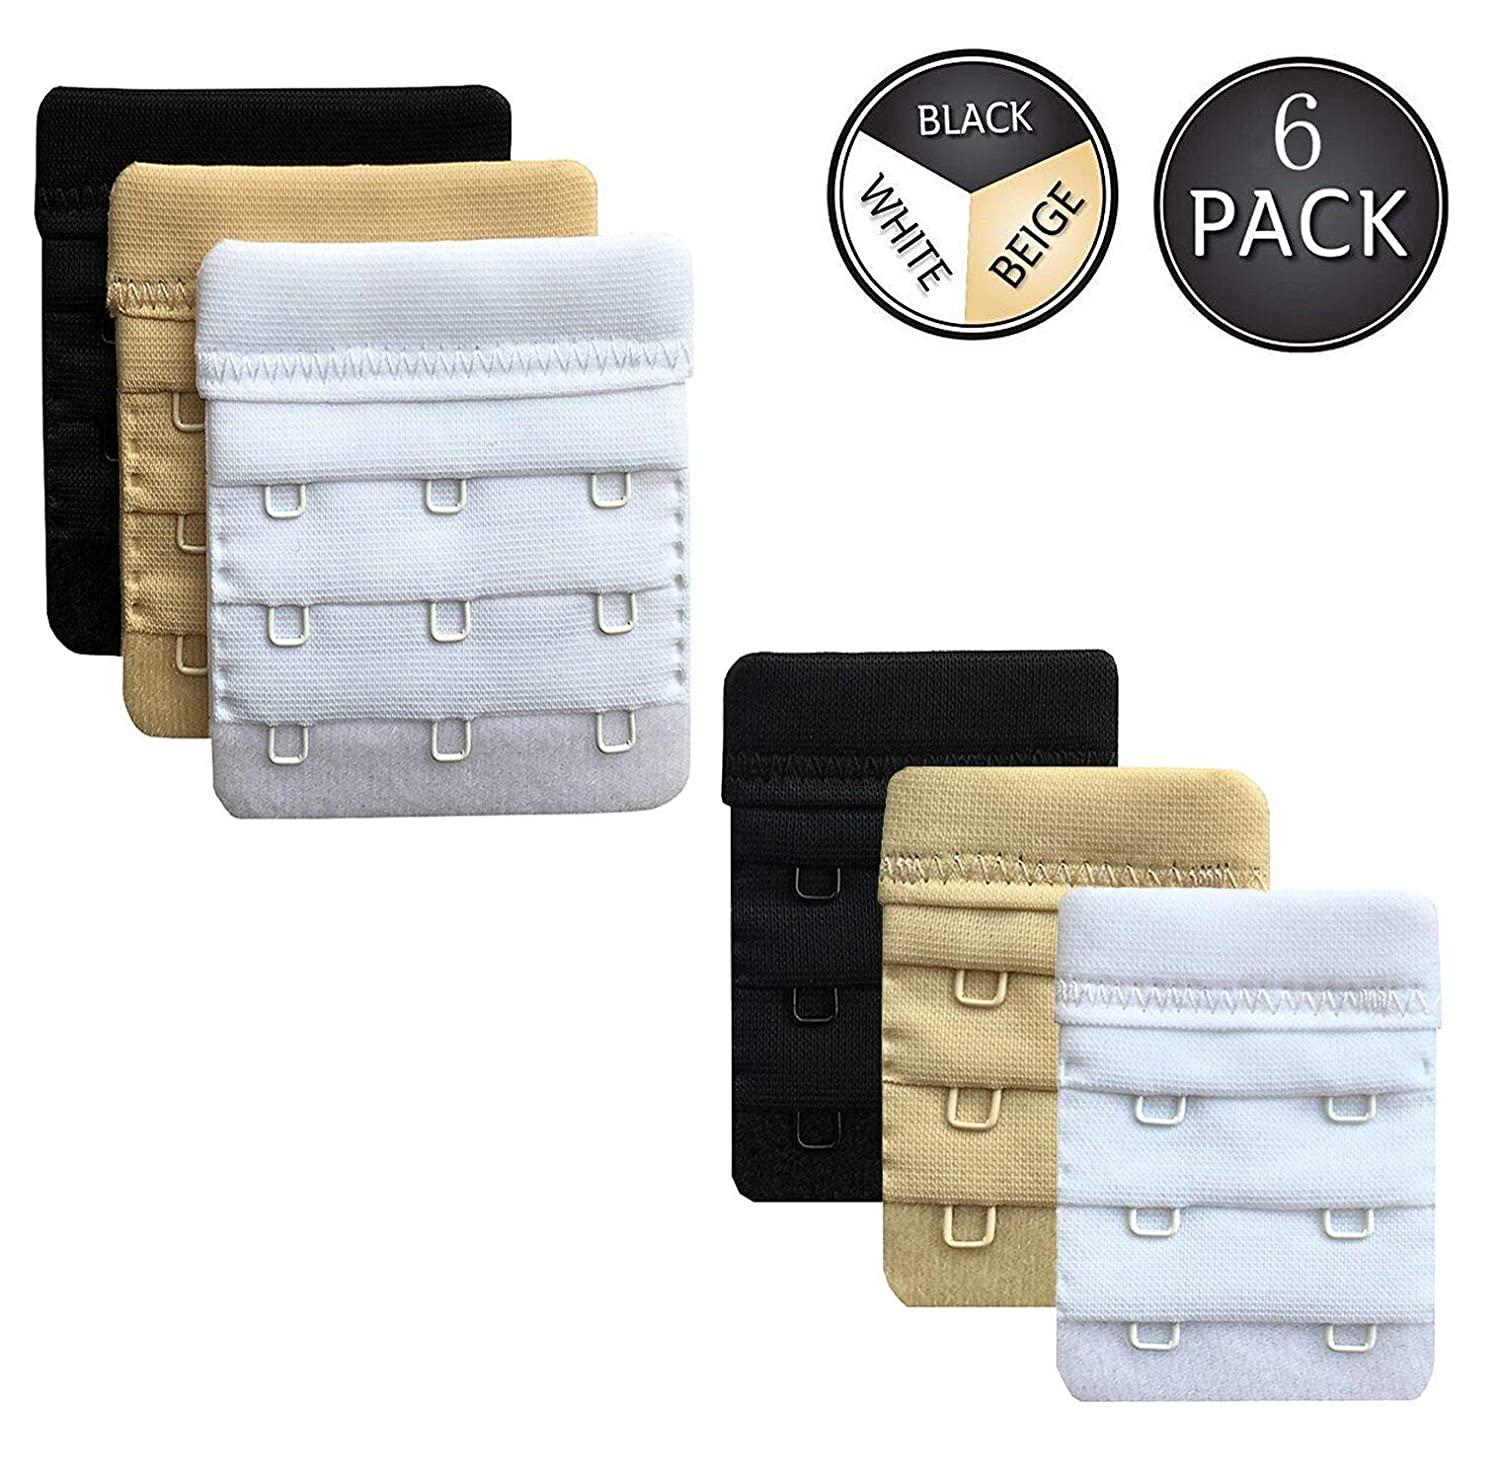 Bra Extender, MisHome 2 Hooks / 3 Hooks Women Bra Extension Strap Band Bra Extenders Pack of 6 (Black, White, Beige)